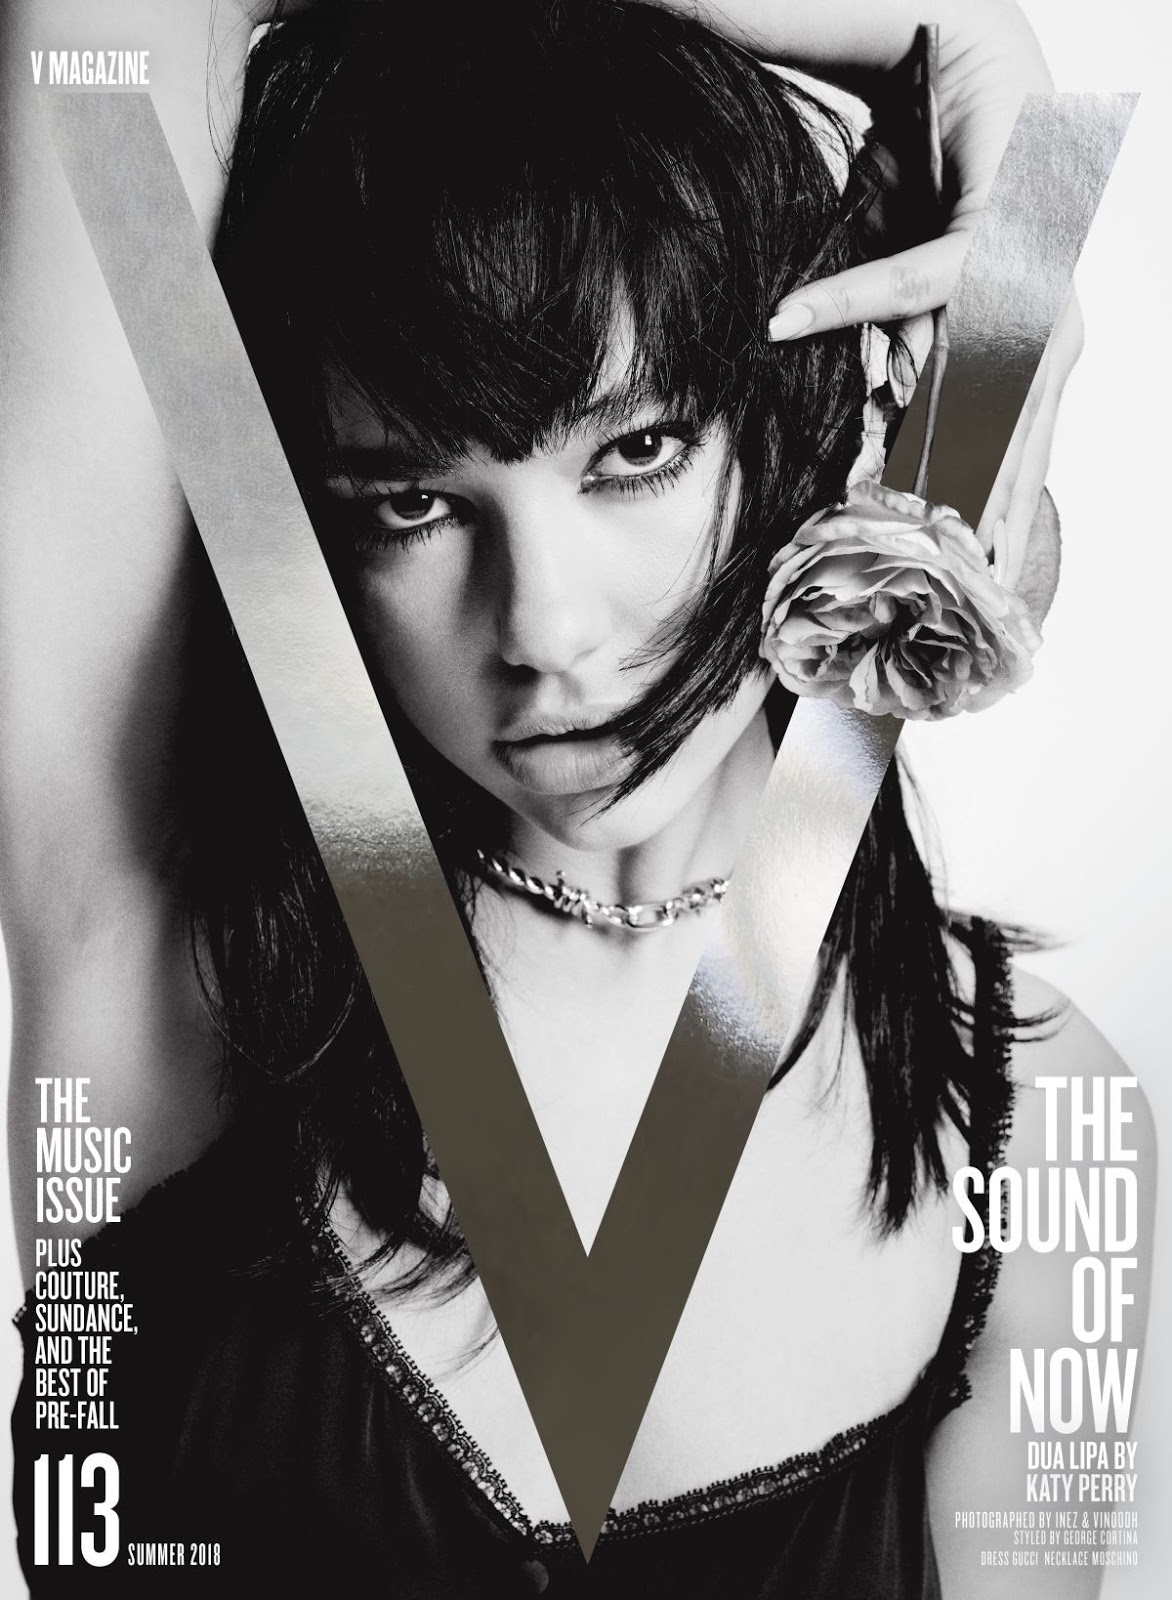 Dua Lipa goes monochrome for V Magazine's issue 113